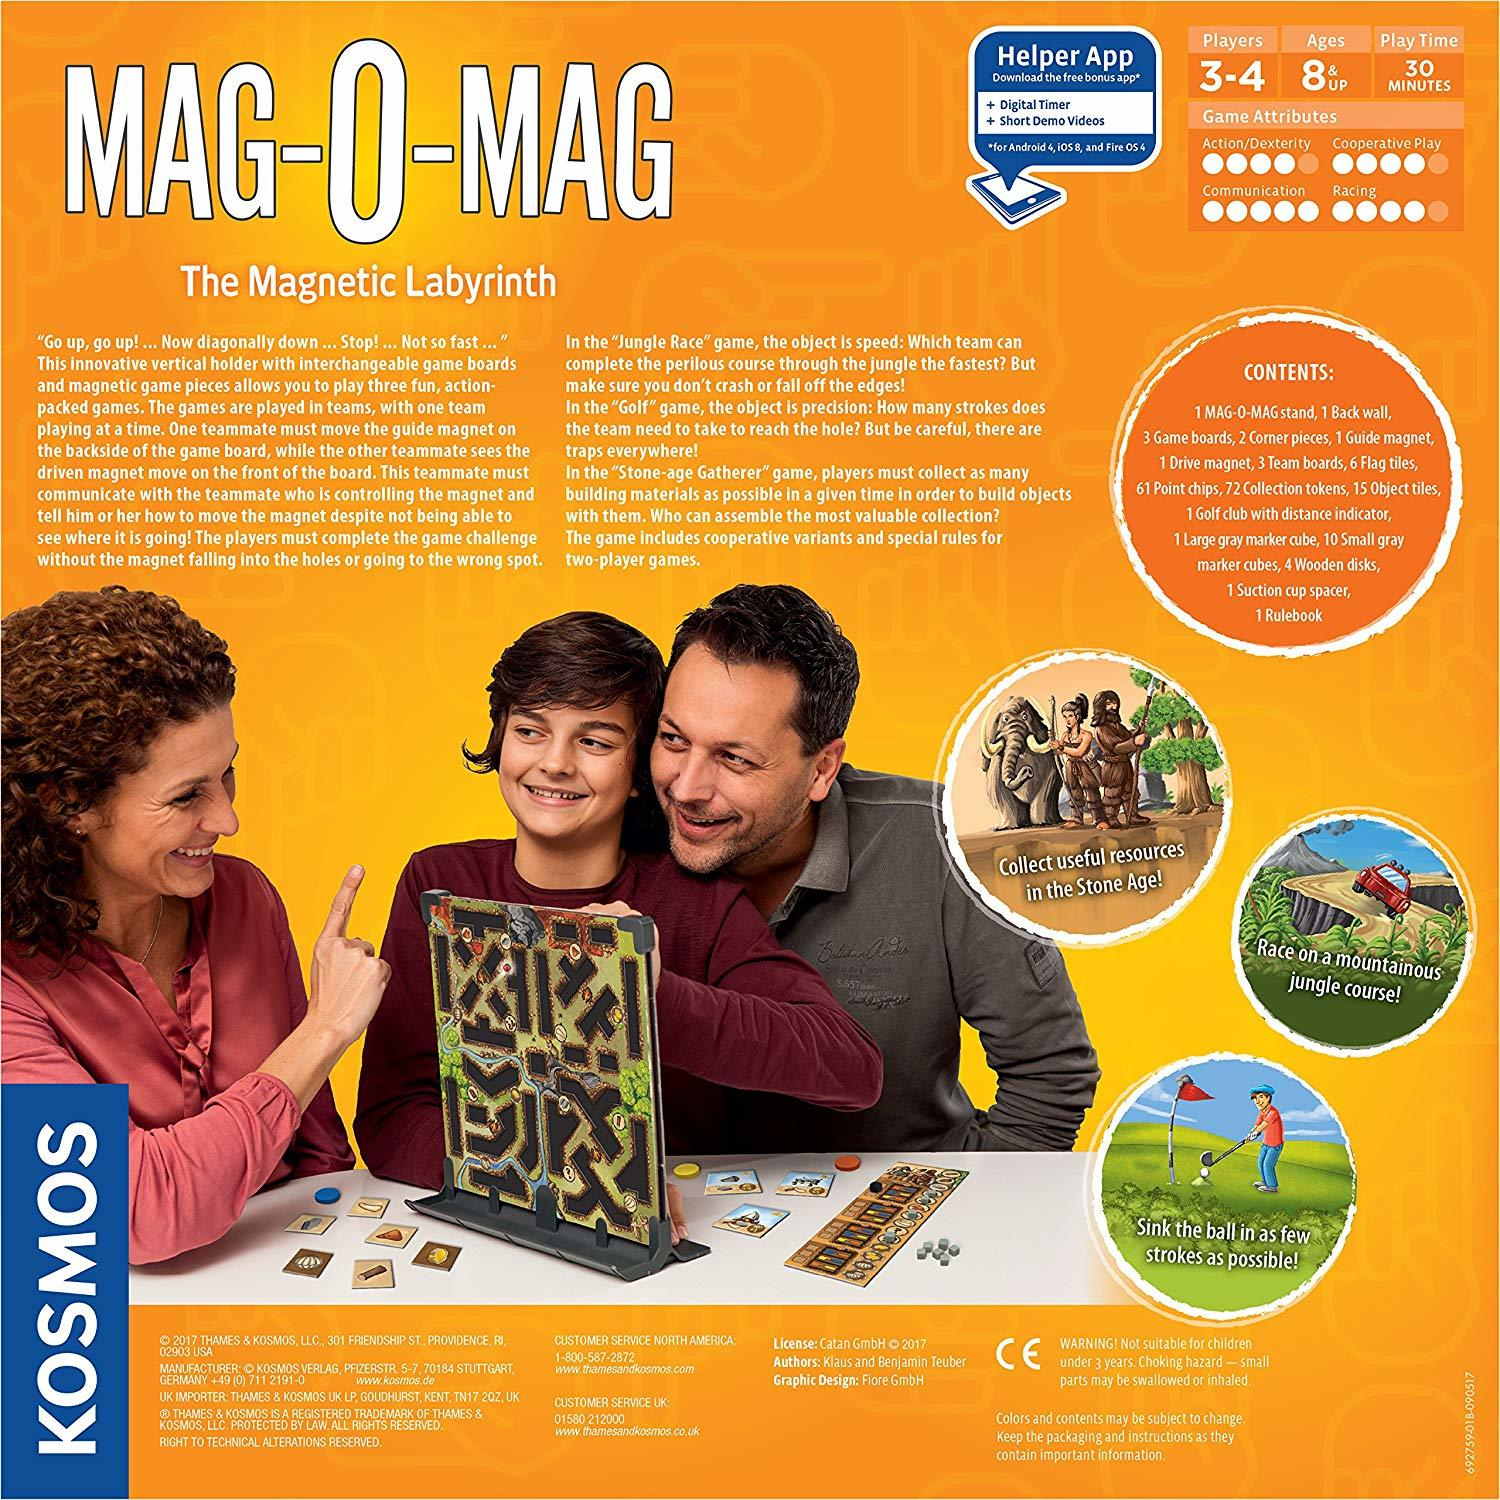 Mag-O-Mag - The Magnetic Labyrinth Game image